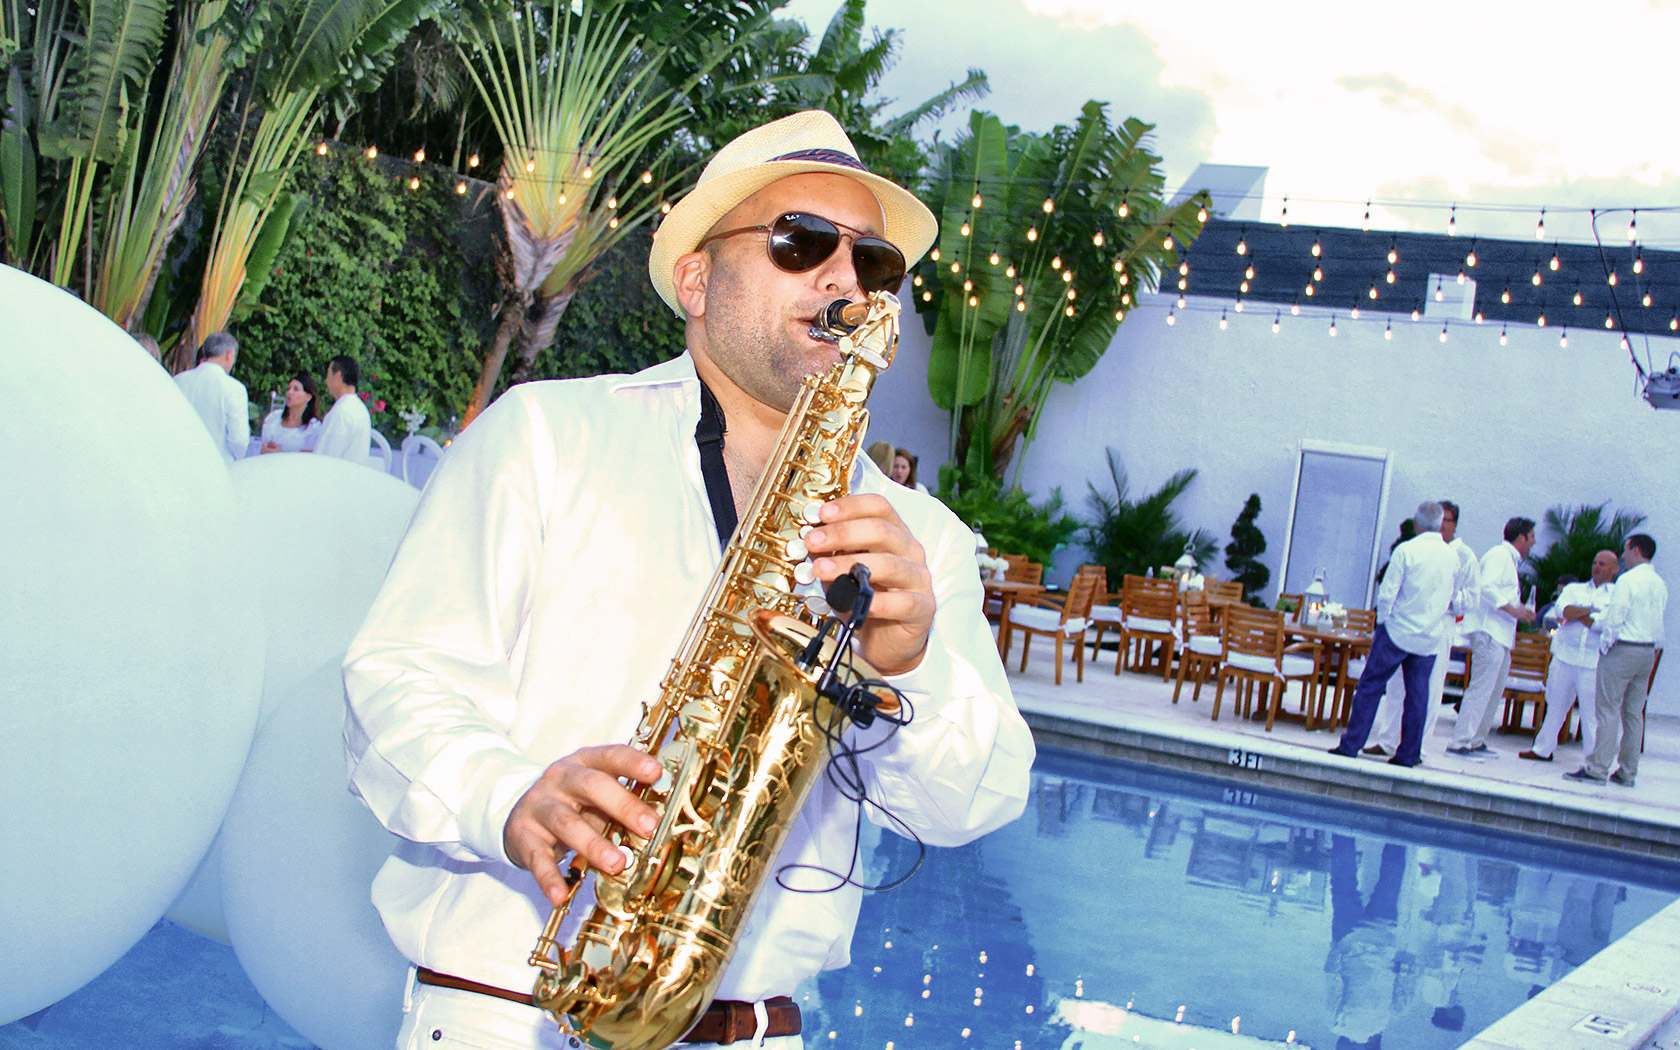 a man playing a saxophone by the pool